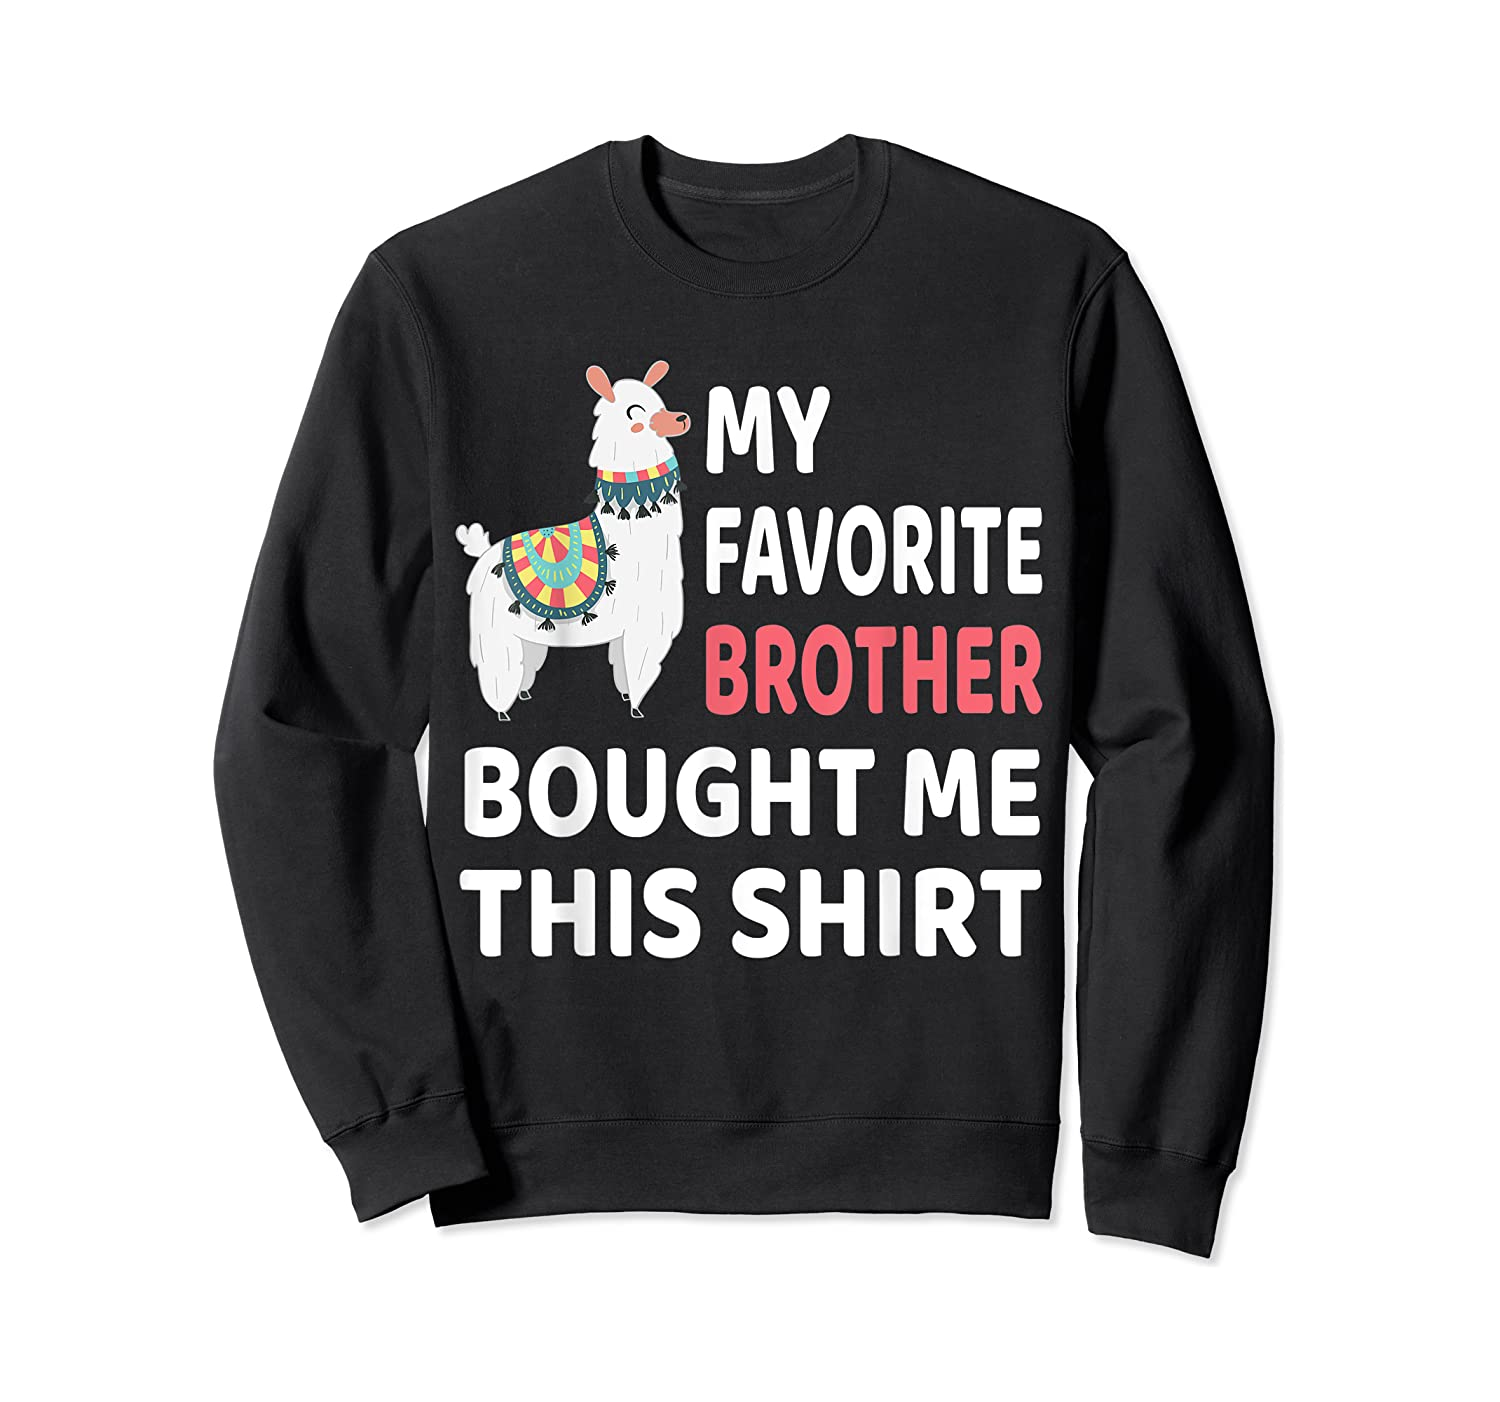 My Favorite Brother Bought Me This Shirt Christmas Gift Llam T-shirt Crewneck Sweater